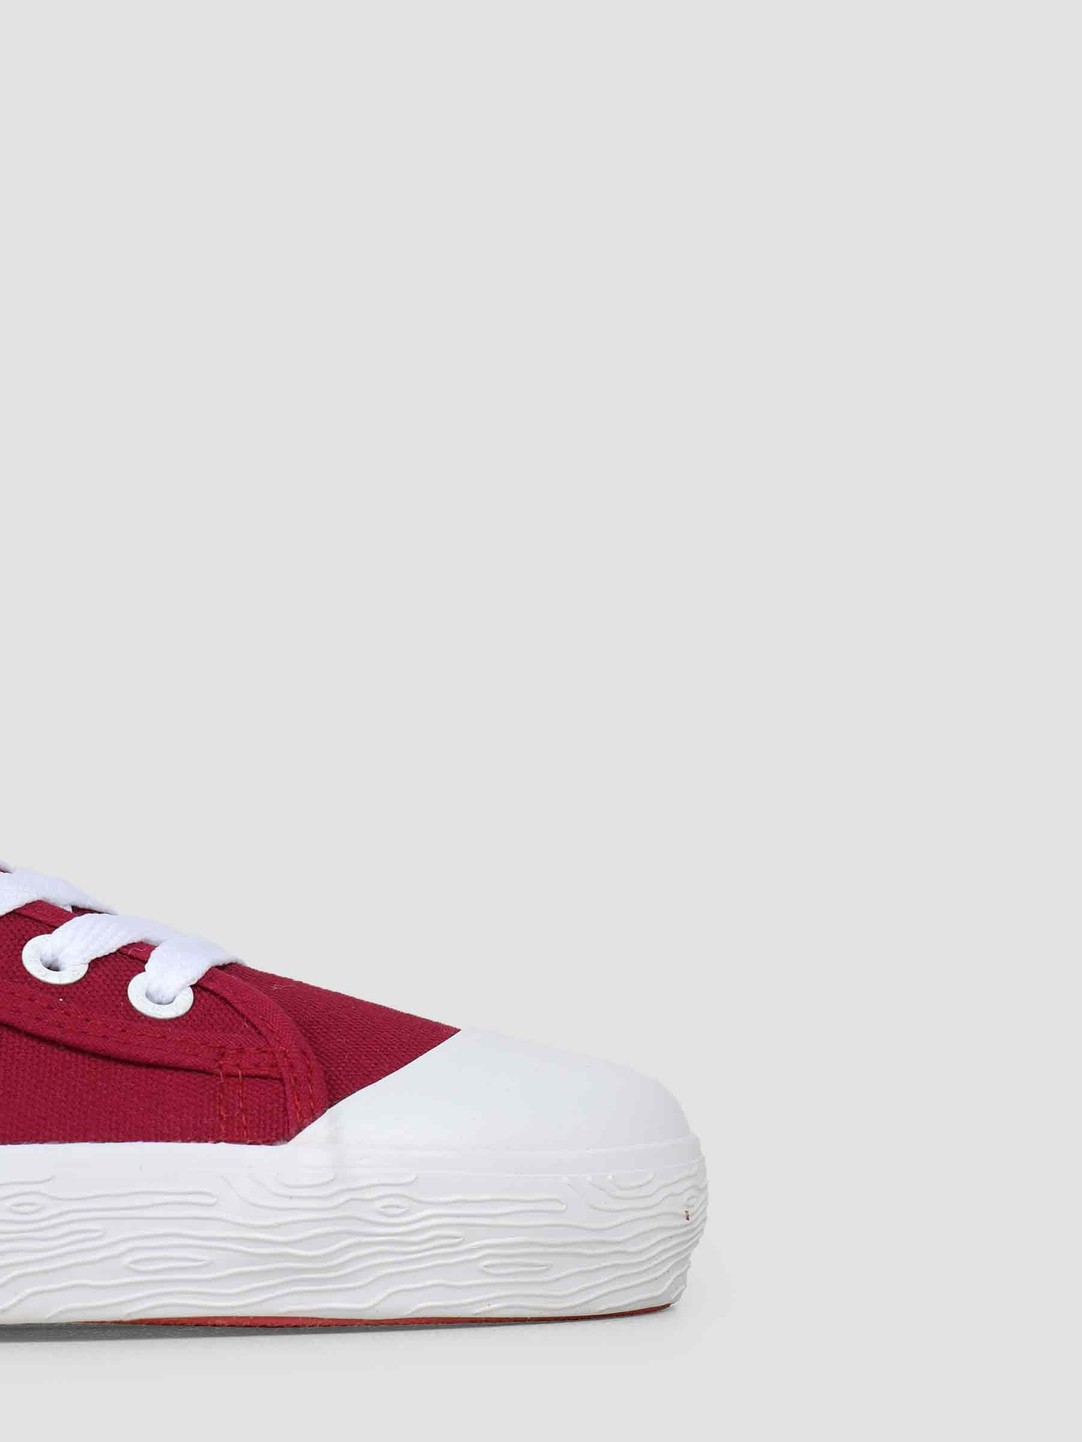 Warrior Warrior Burgundy White WB-01